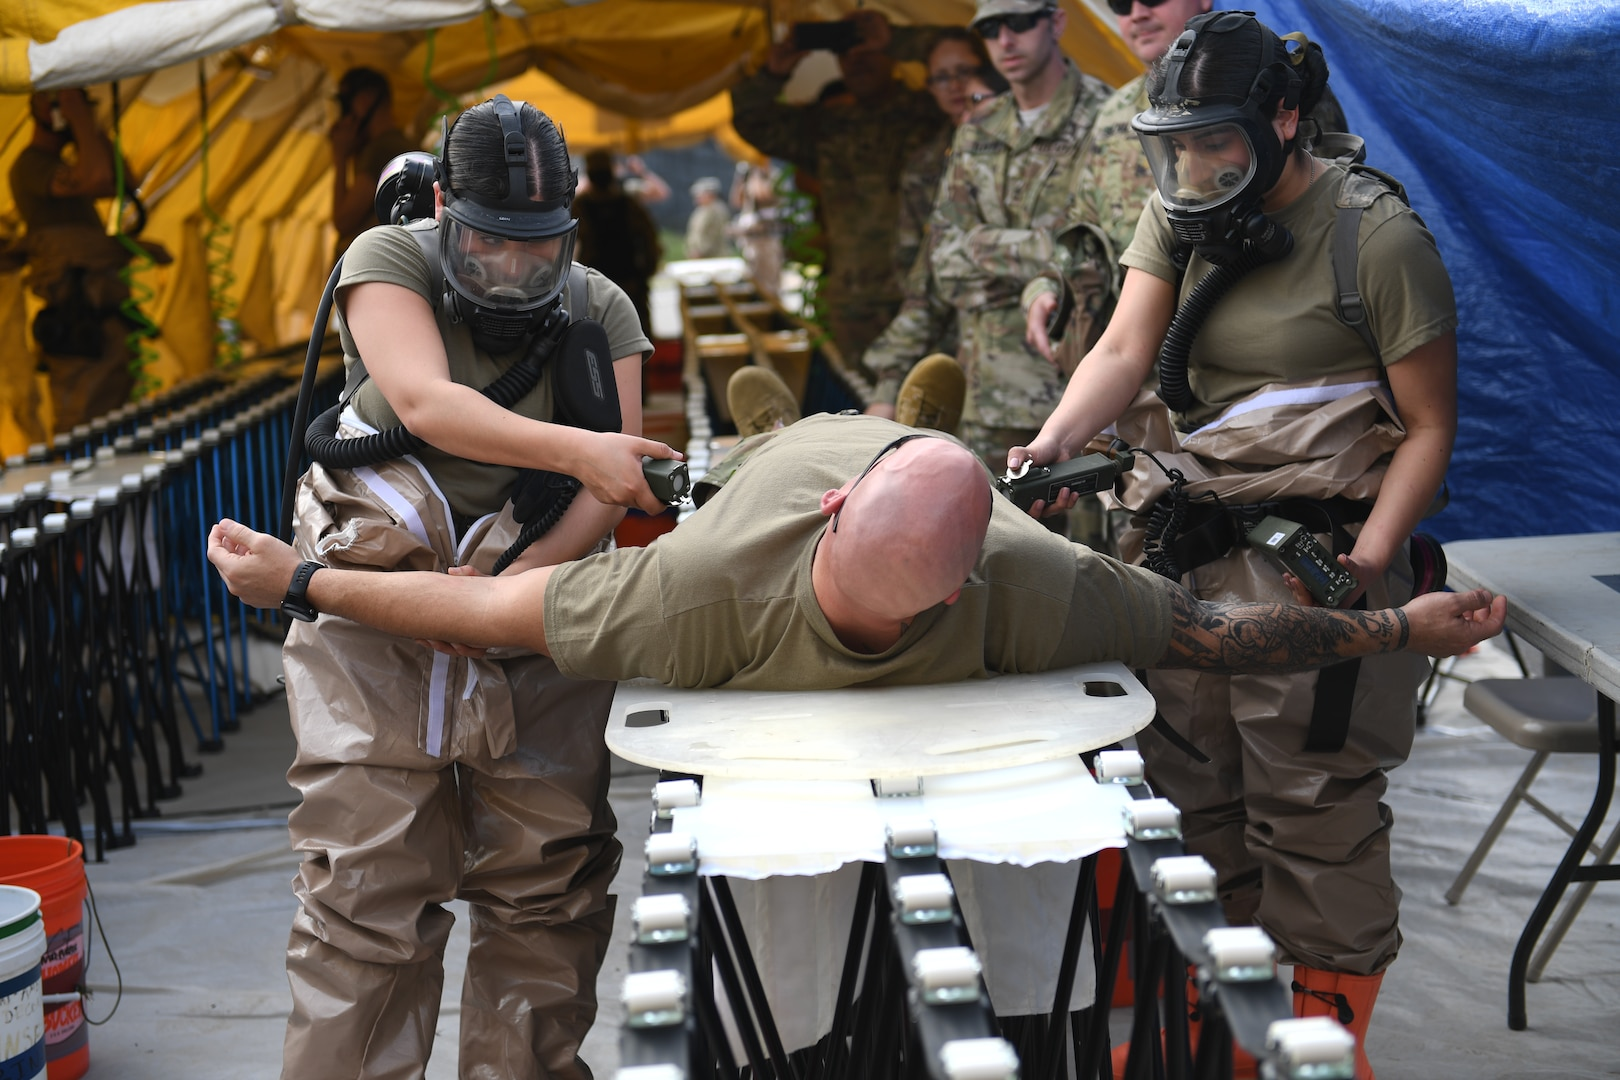 The Texas National Guard's 6th CERFP Task Force, which includes the 149th Medical Det-1 and Fatality Search and Recovery Team, participated in response training with local civil authorities Feb. 5, 2019, in Round Rock, Texas.